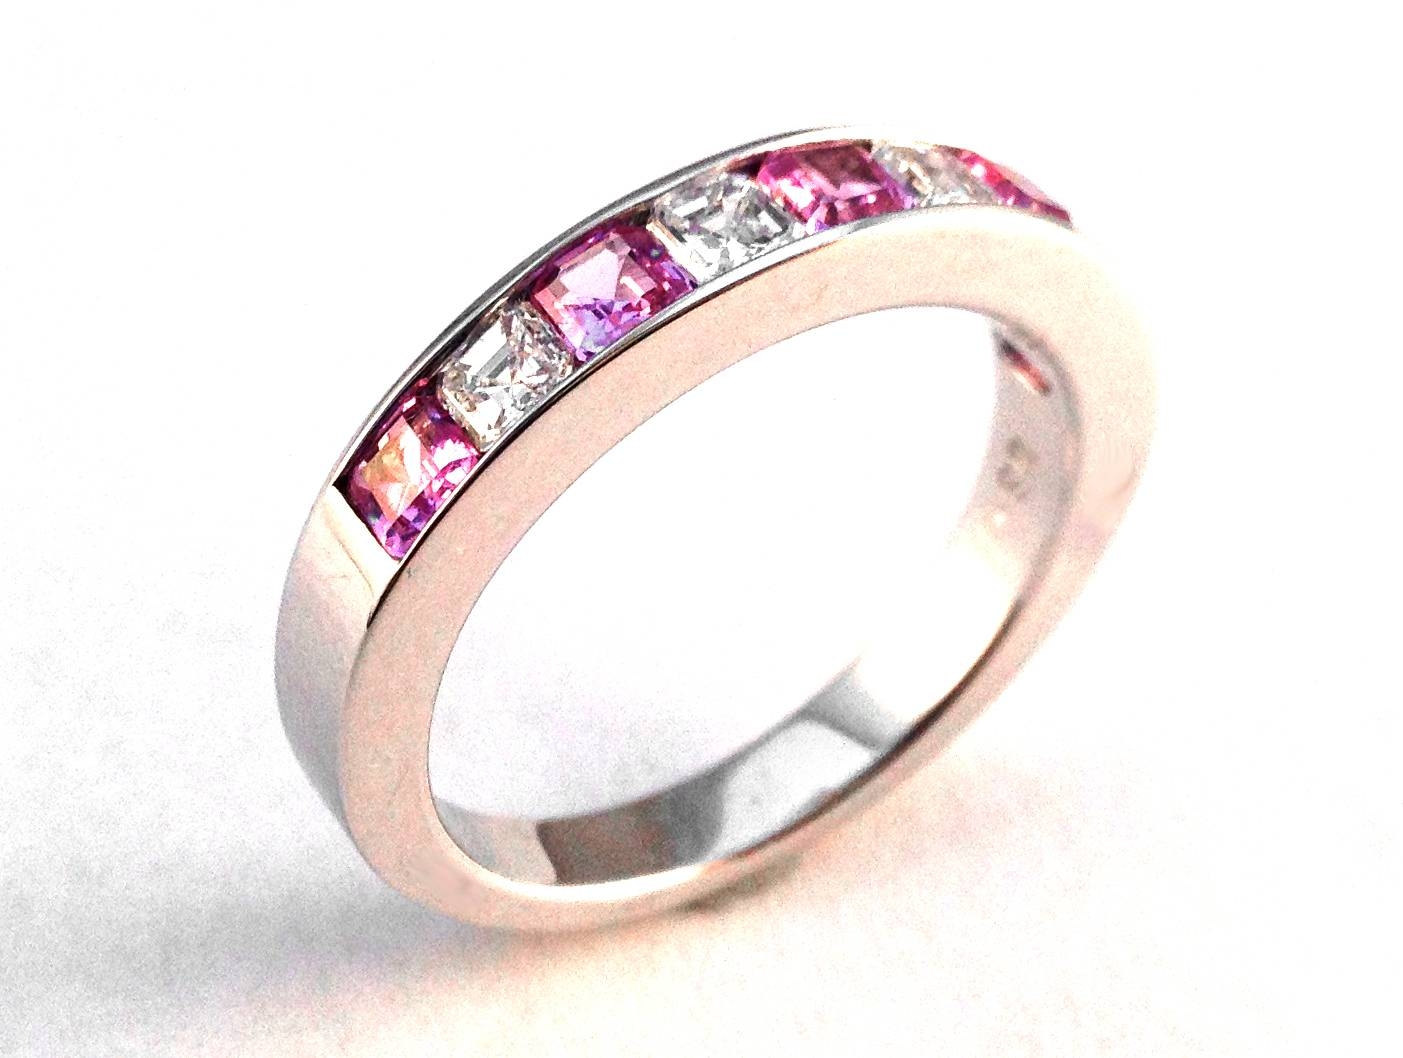 Wedding Band – Four Stone Asscher Diamond & Pink Sapphire Wedding Intended For Recent Pink Sapphire Diamond Wedding Bands (View 12 of 15)